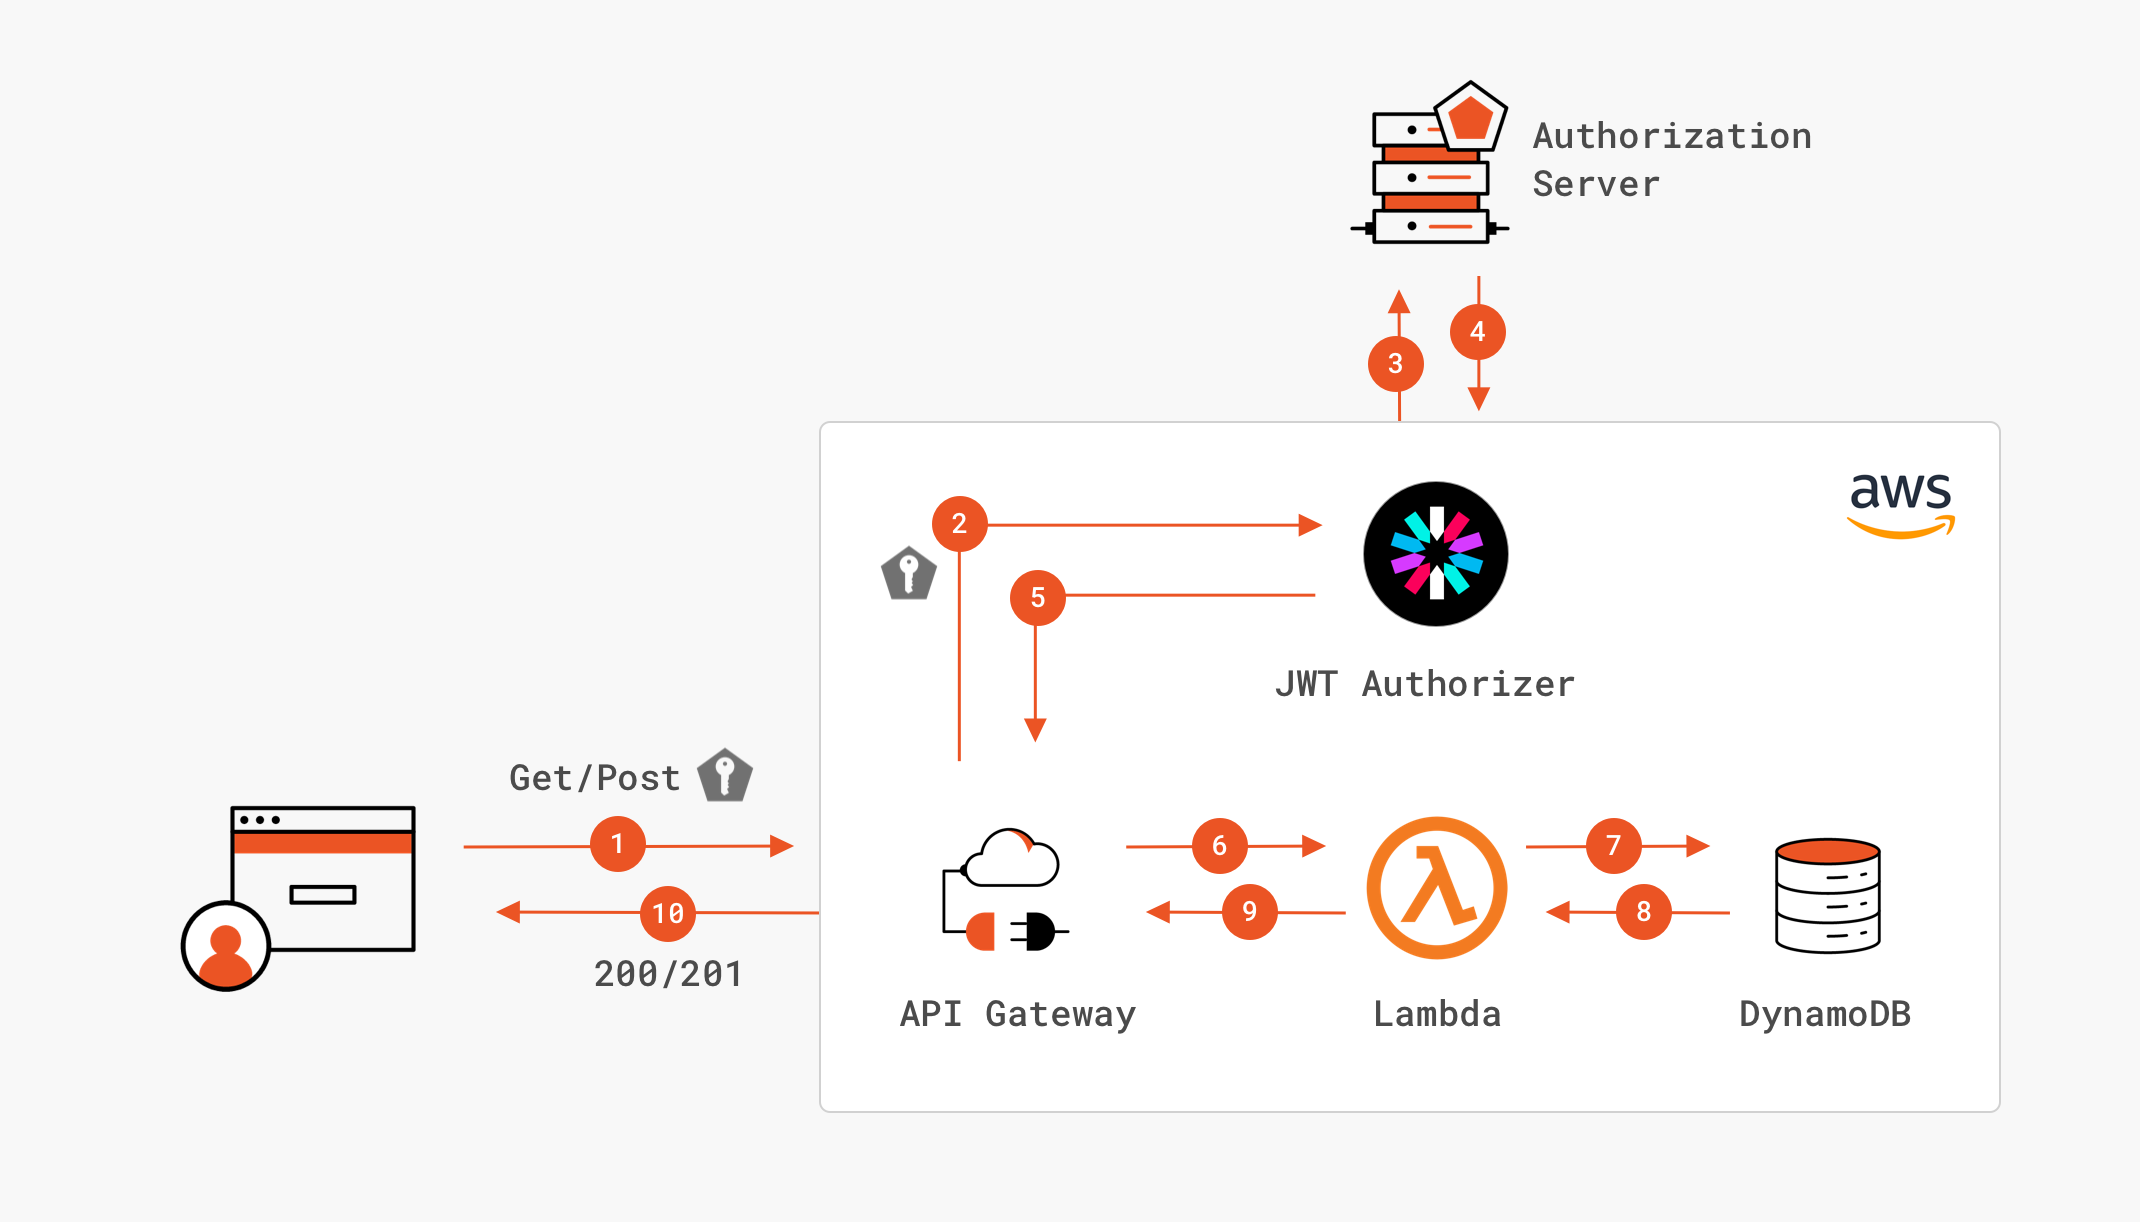 Architecture Diagram of AWS HTTP APIs using JWT Authorizers